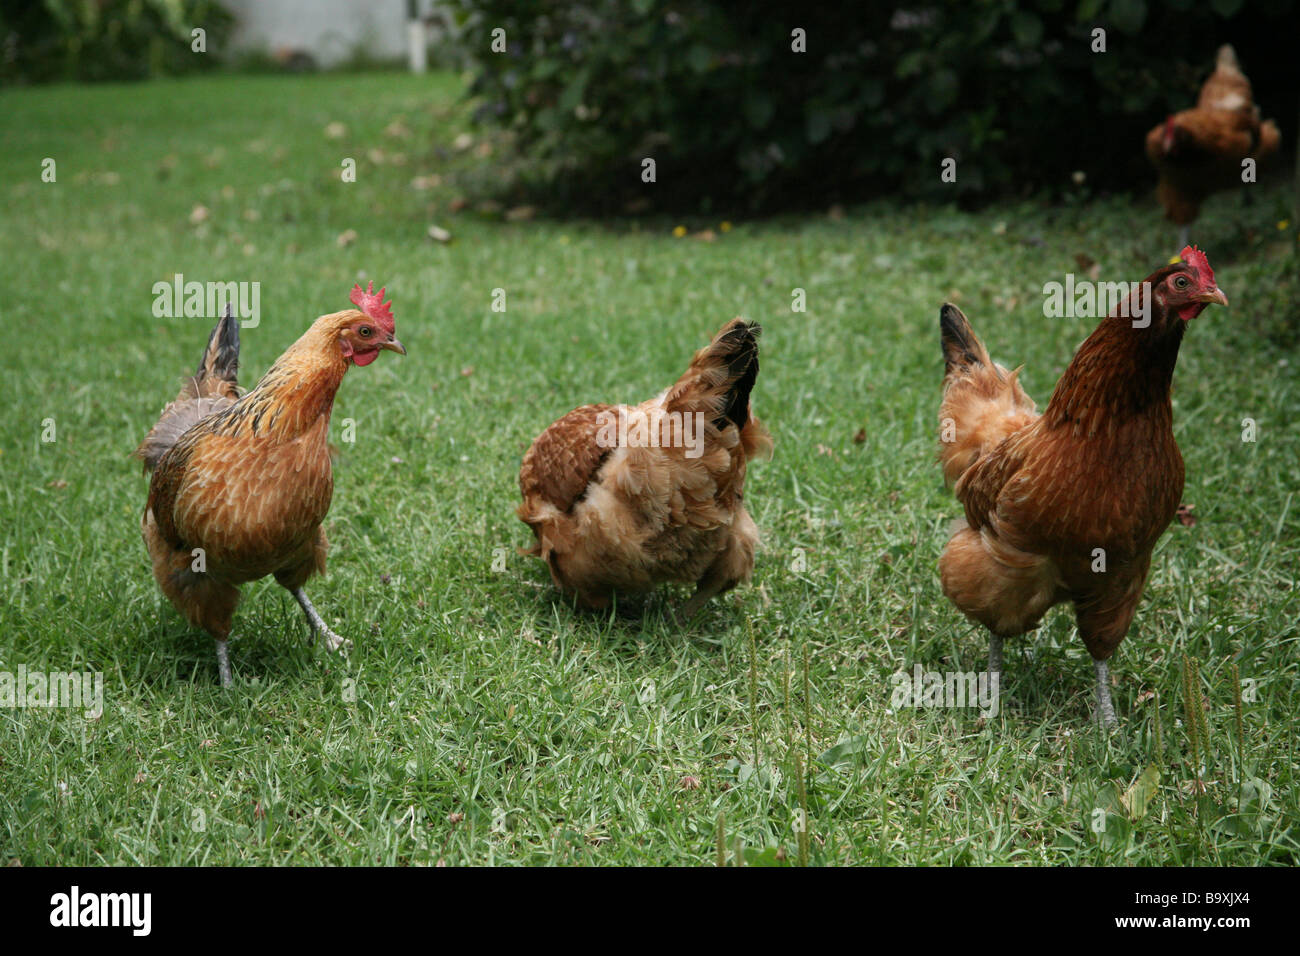 dancing chickens in the garden stock photo 23327868 alamy